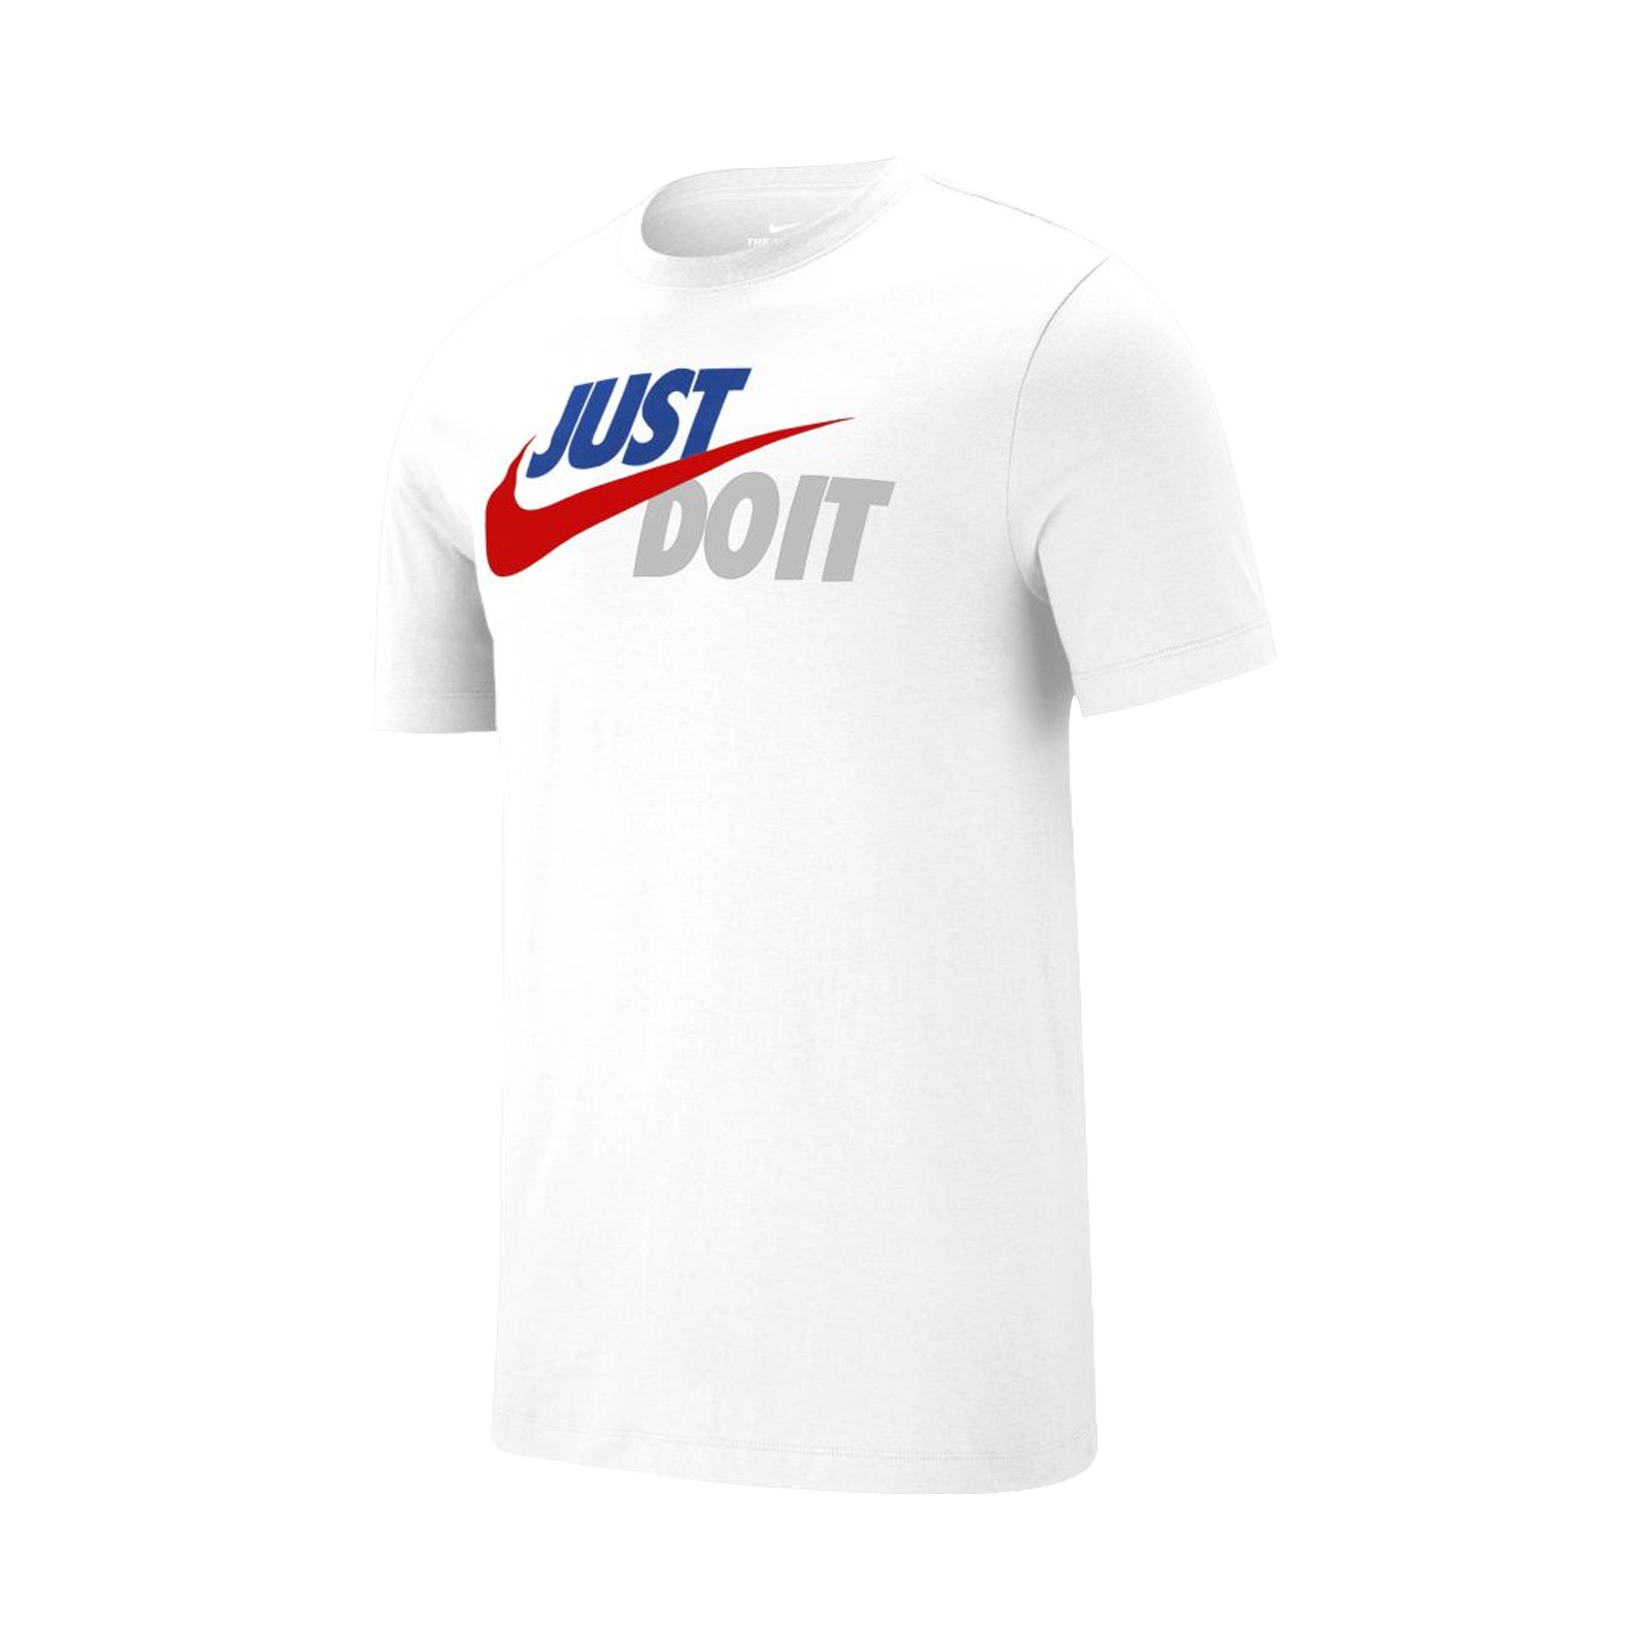 Nike Sportswear Just Do It T-Shirt White